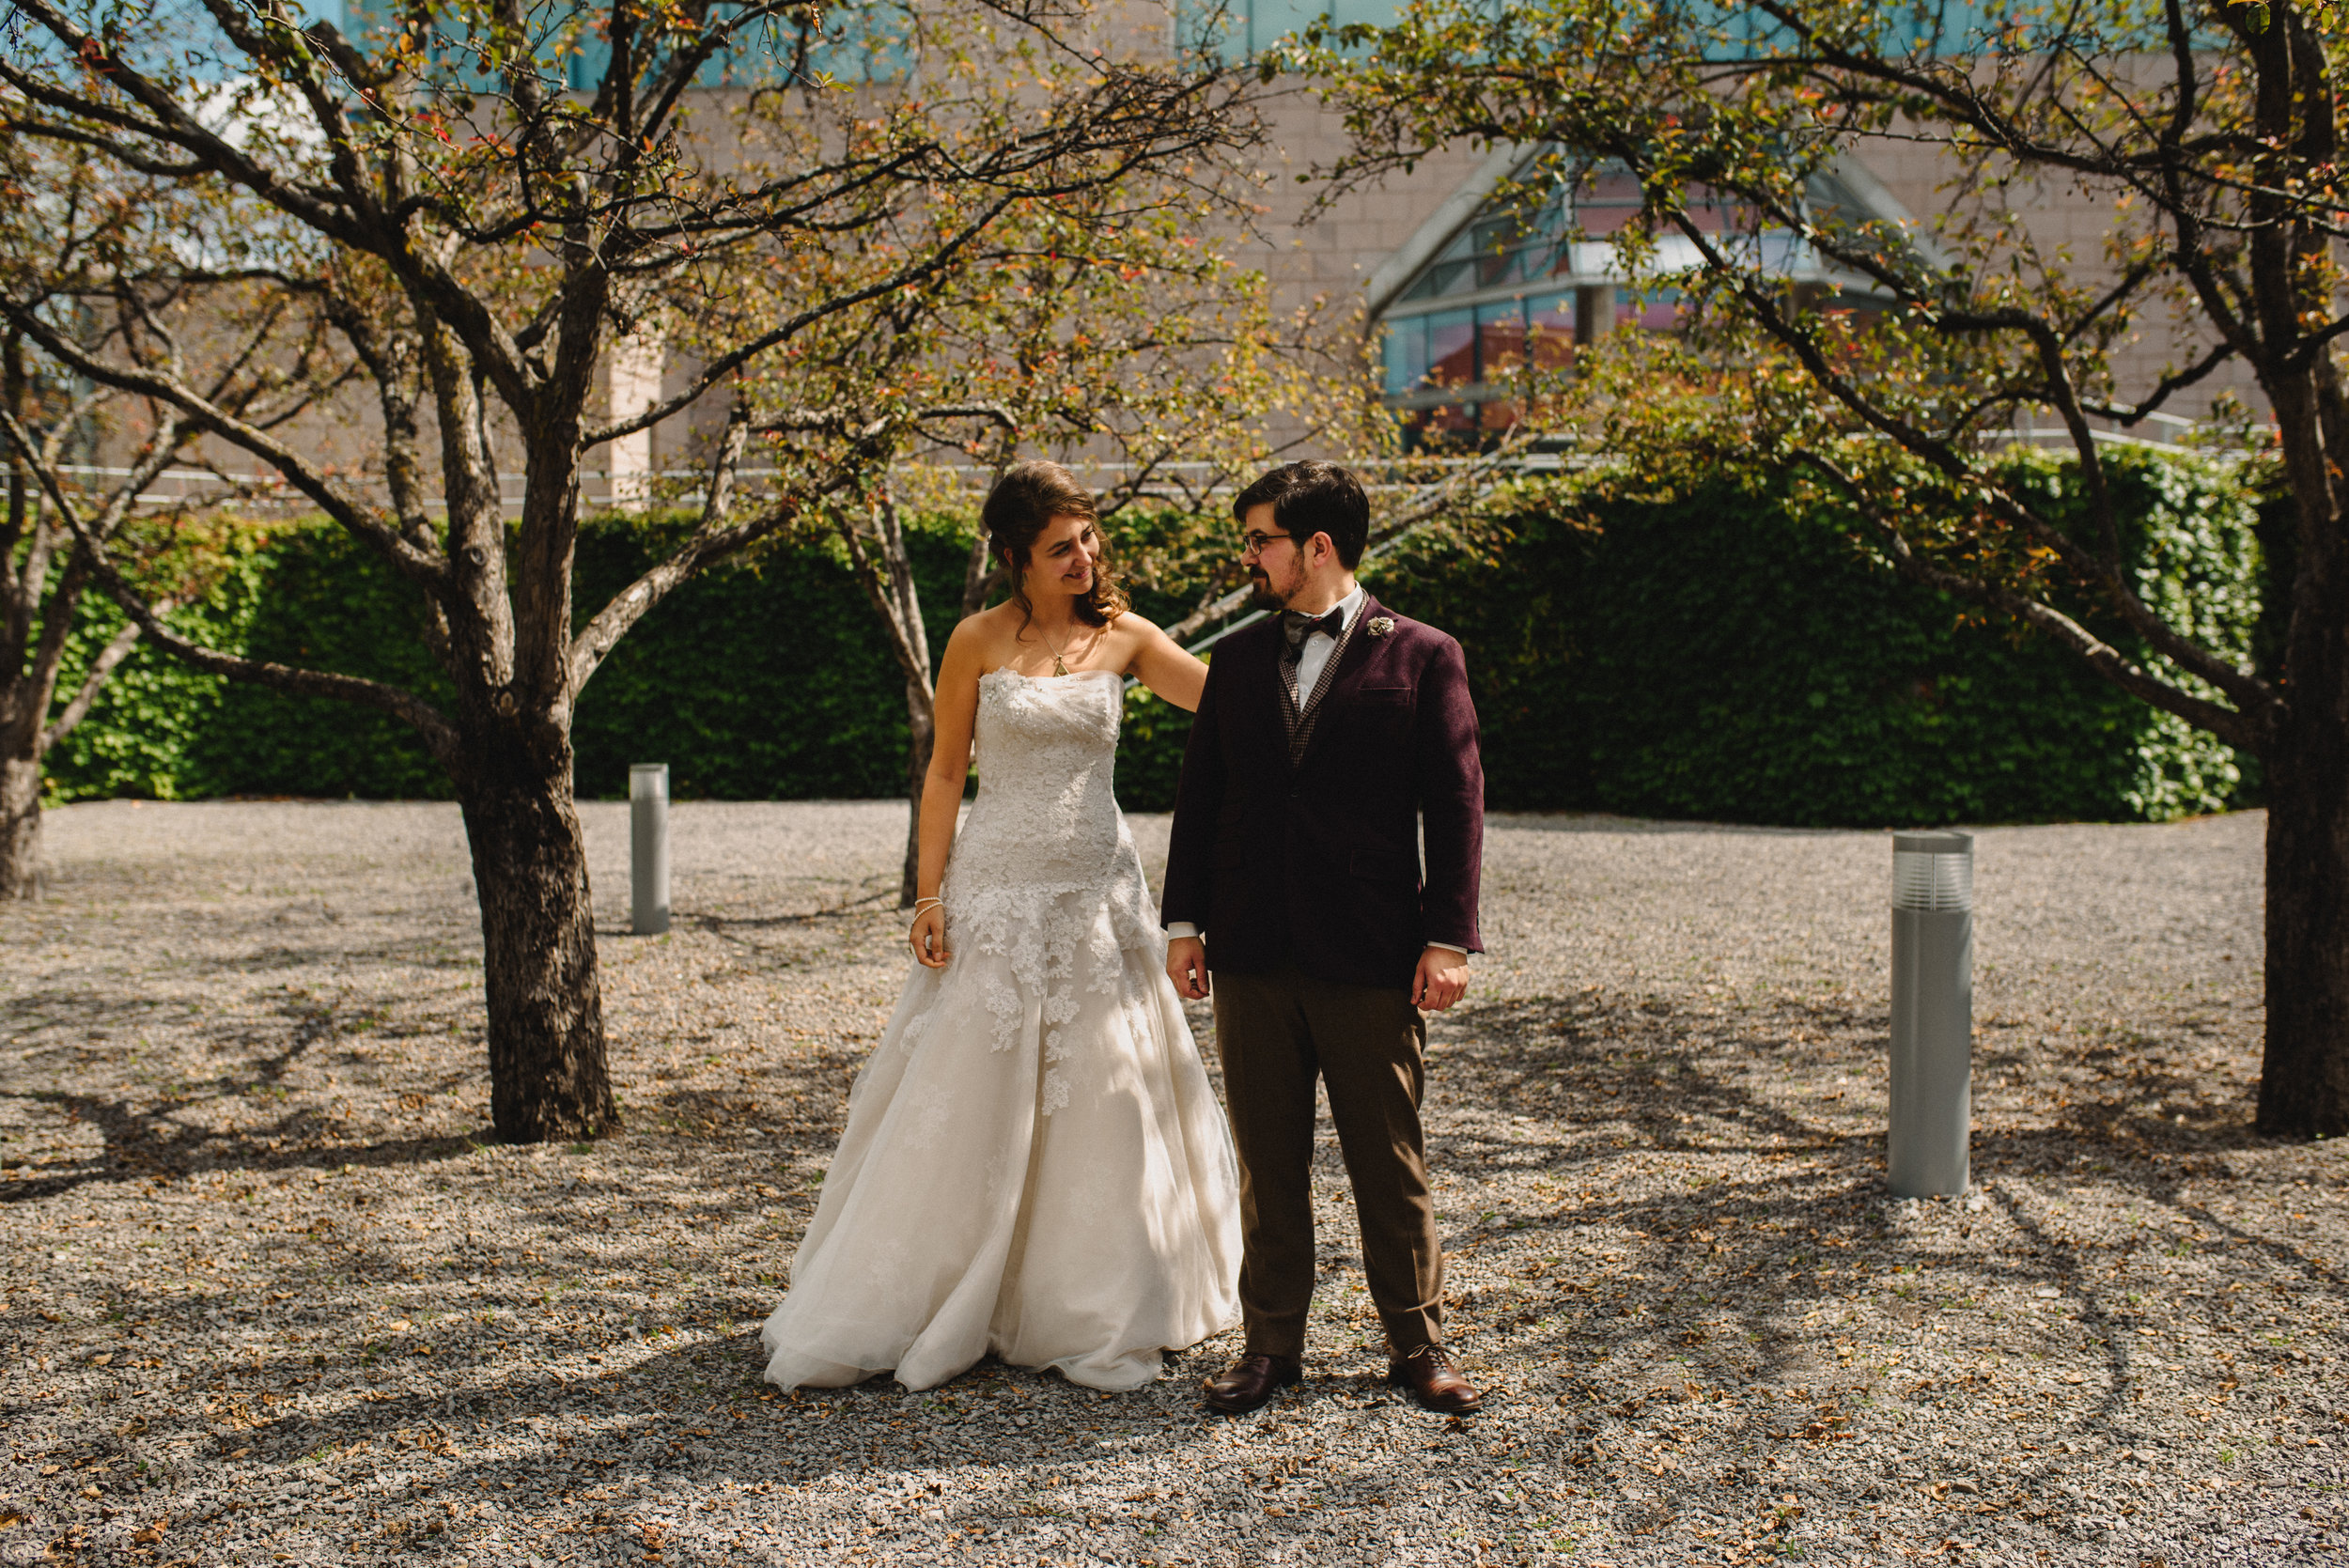 Mocha Tree Studios Ottawa Wedding and Engagement Photographer and Videographer Dark Moody Intimate Authentic Modern Romantic Cinematic Best Candid Ottawa Rowing Club 18